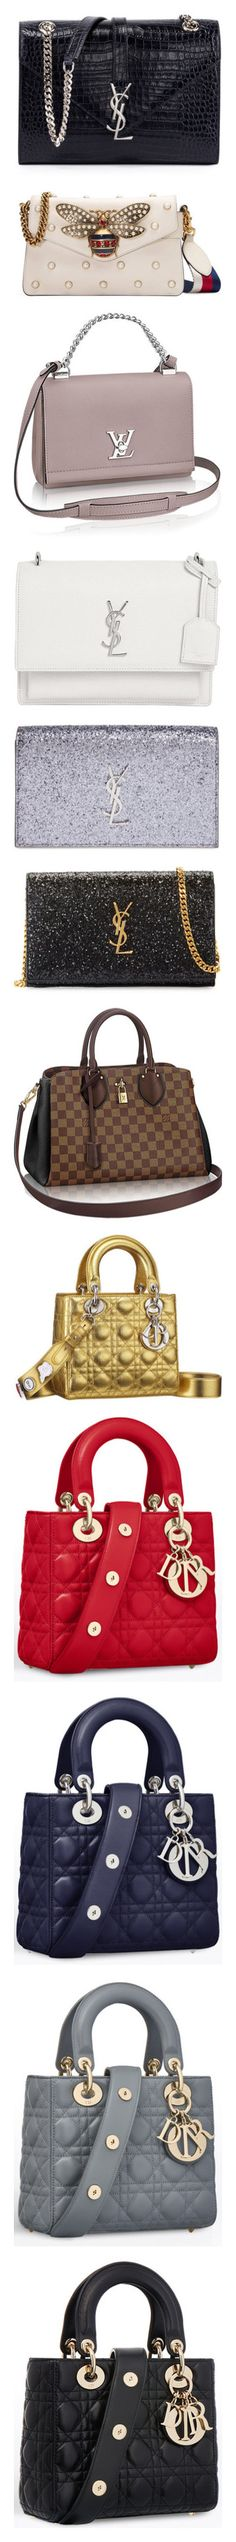 """Bag/Suitcase/Messenger Bag/Clutch ...3"" by rocket-queen-baby ❤ liked on Polyvore featuring bags, handbags, shoulder bags, navy, red shoulder bag, shoulder handbags, flap shoulder bag, yves saint laurent handbags, chain strap purse and clutches"